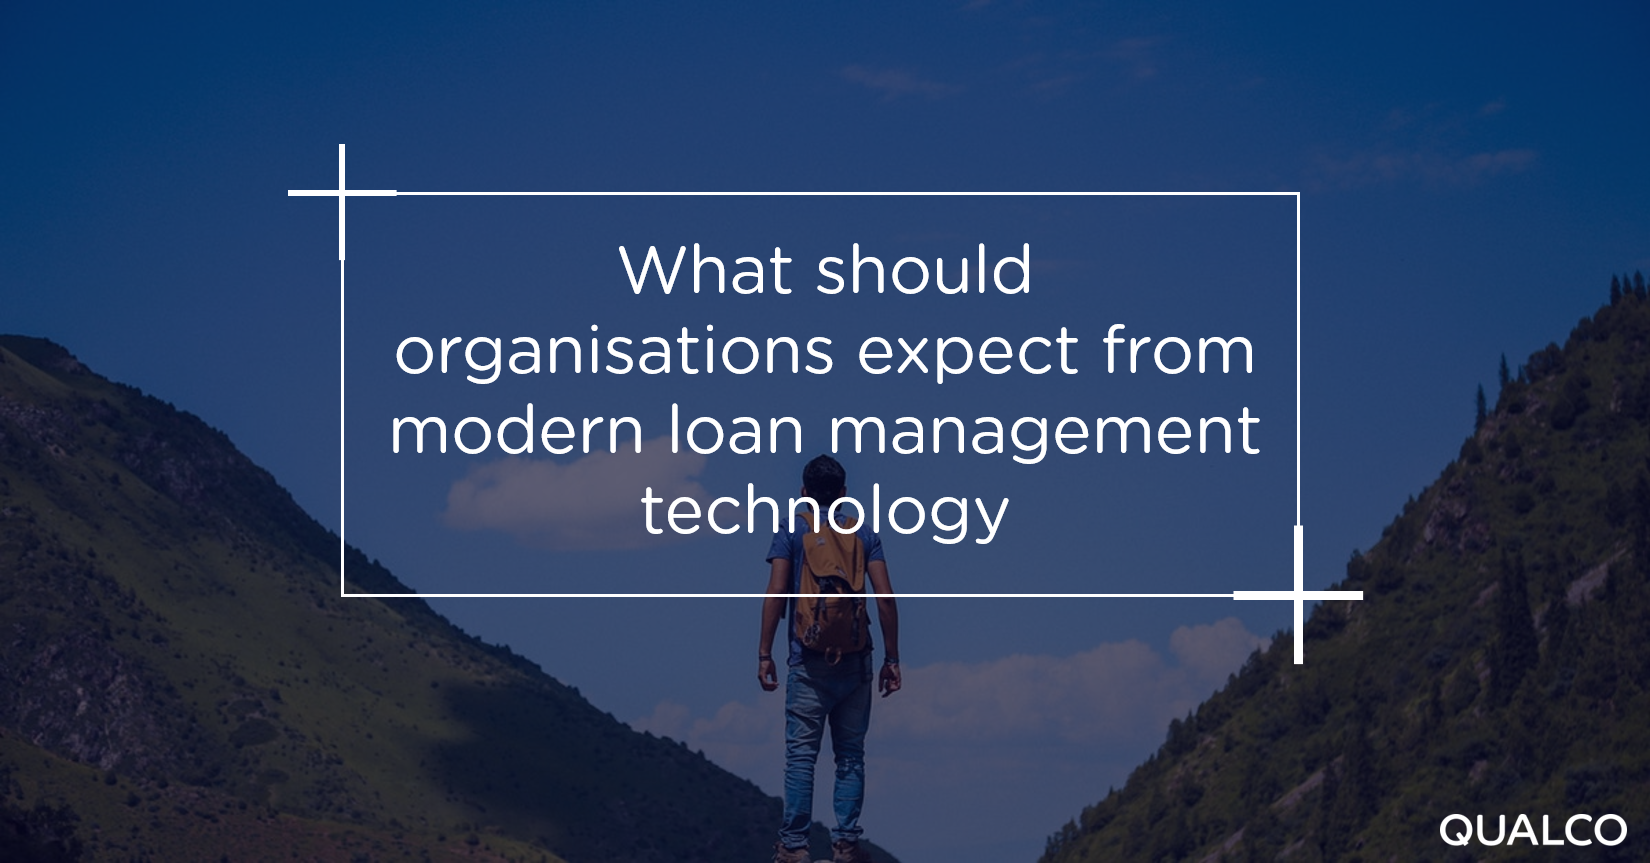 [Checklist] What should organizations expect from modern loan management technology?